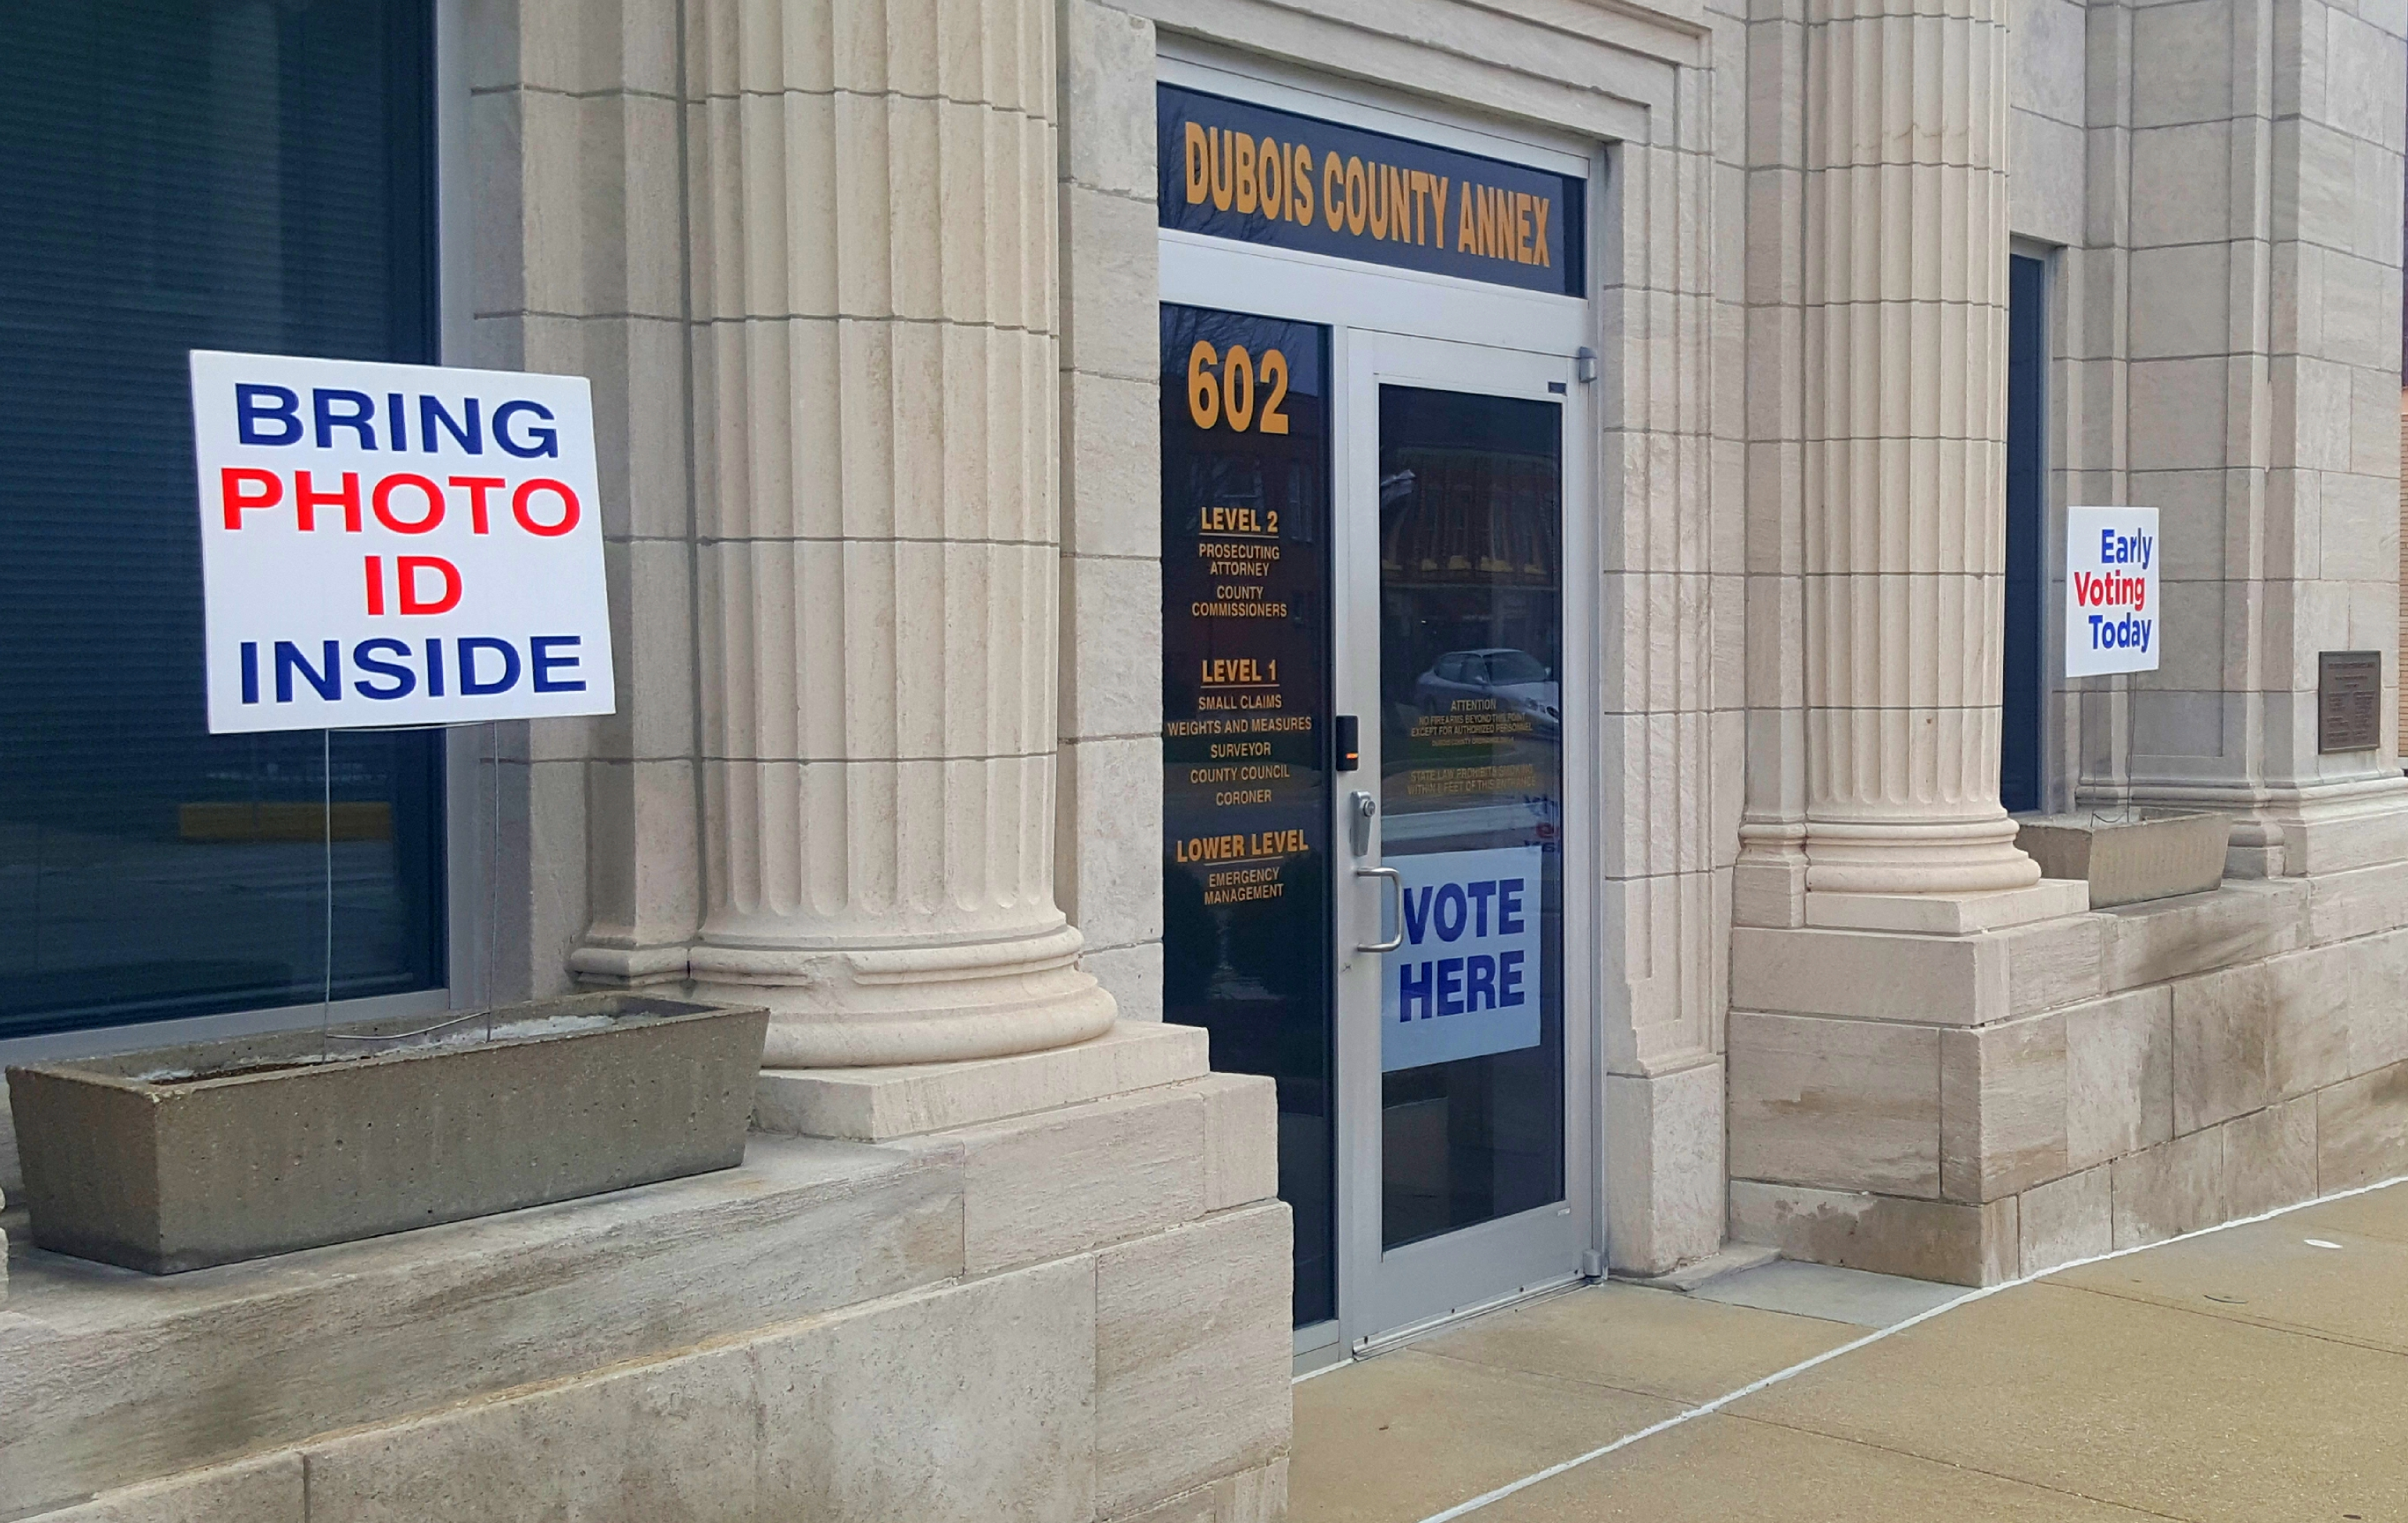 More Locations Open Monday to Cast Early Ballot in Next Week's Municipal Elections